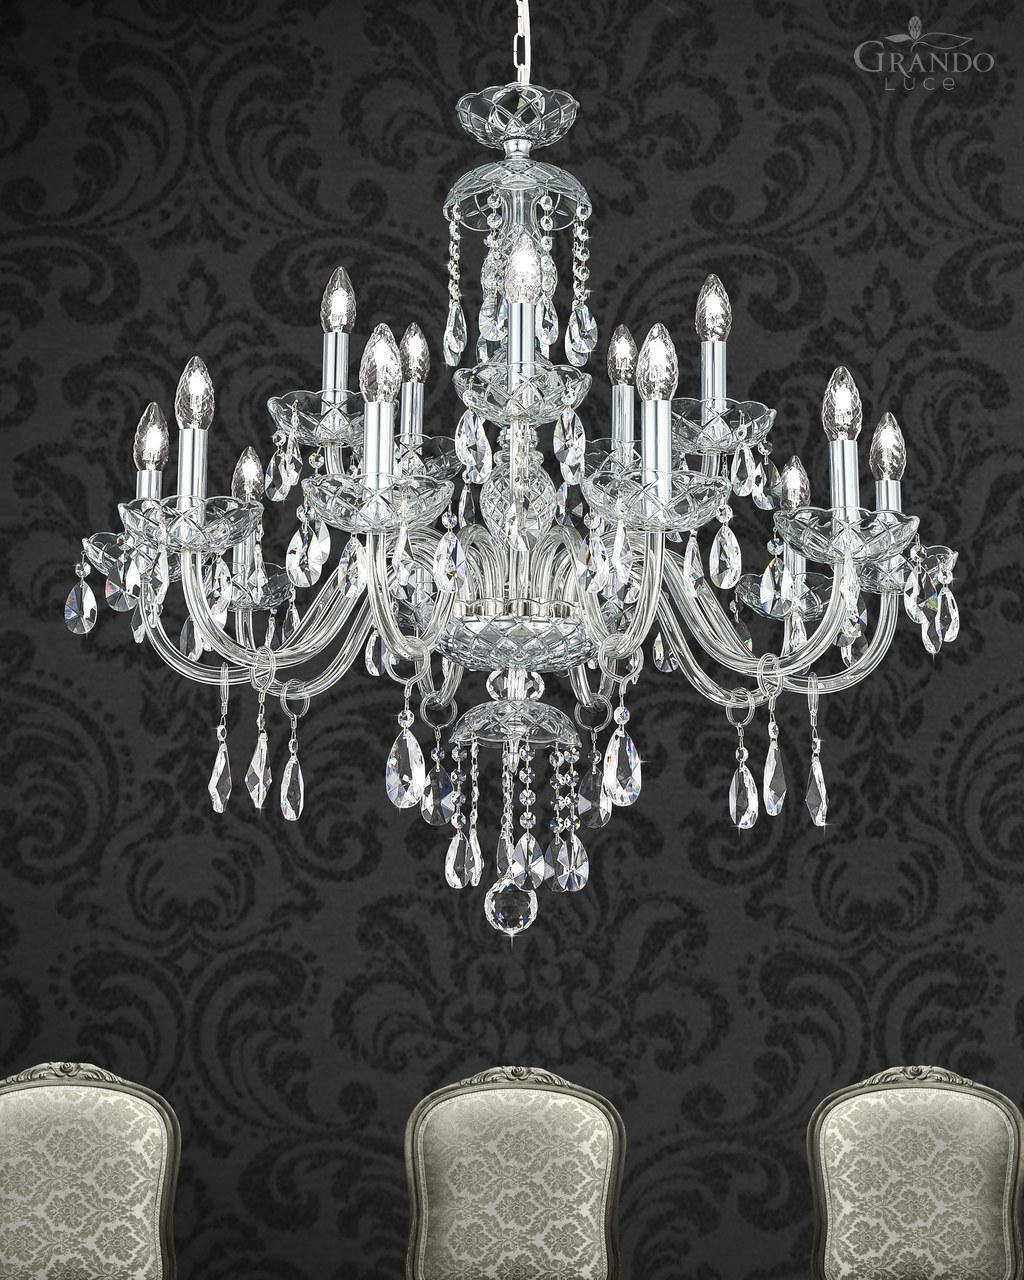 Classic Baroque Crystal Chandelier Collection Olympia Grandoluce Inside Baroque Chandelier (Image 7 of 15)